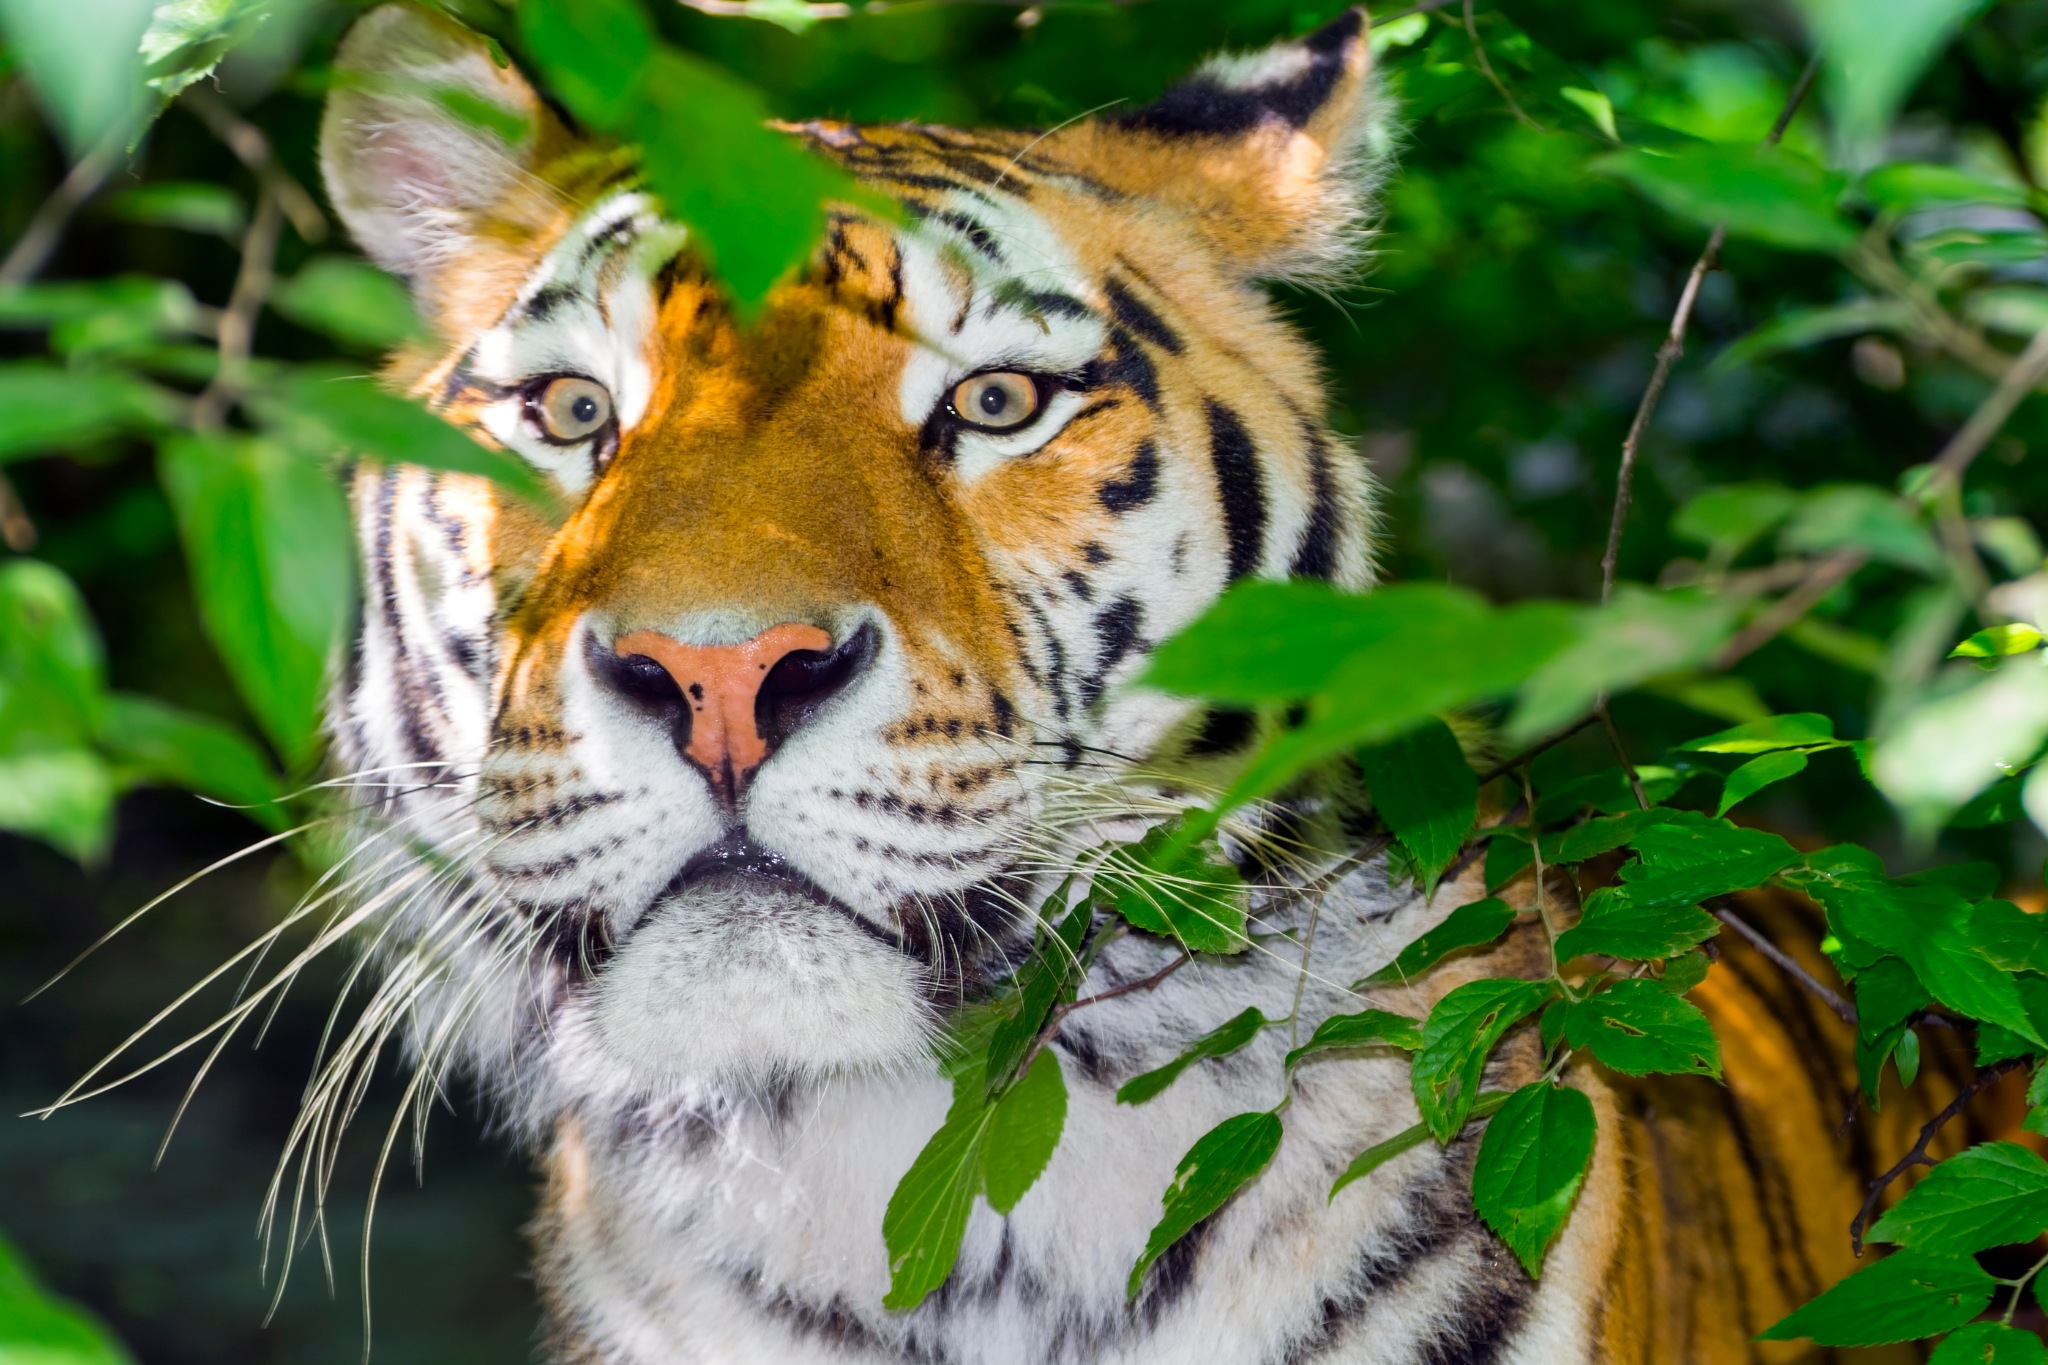 Tiger stripes and green leaves by eLajos